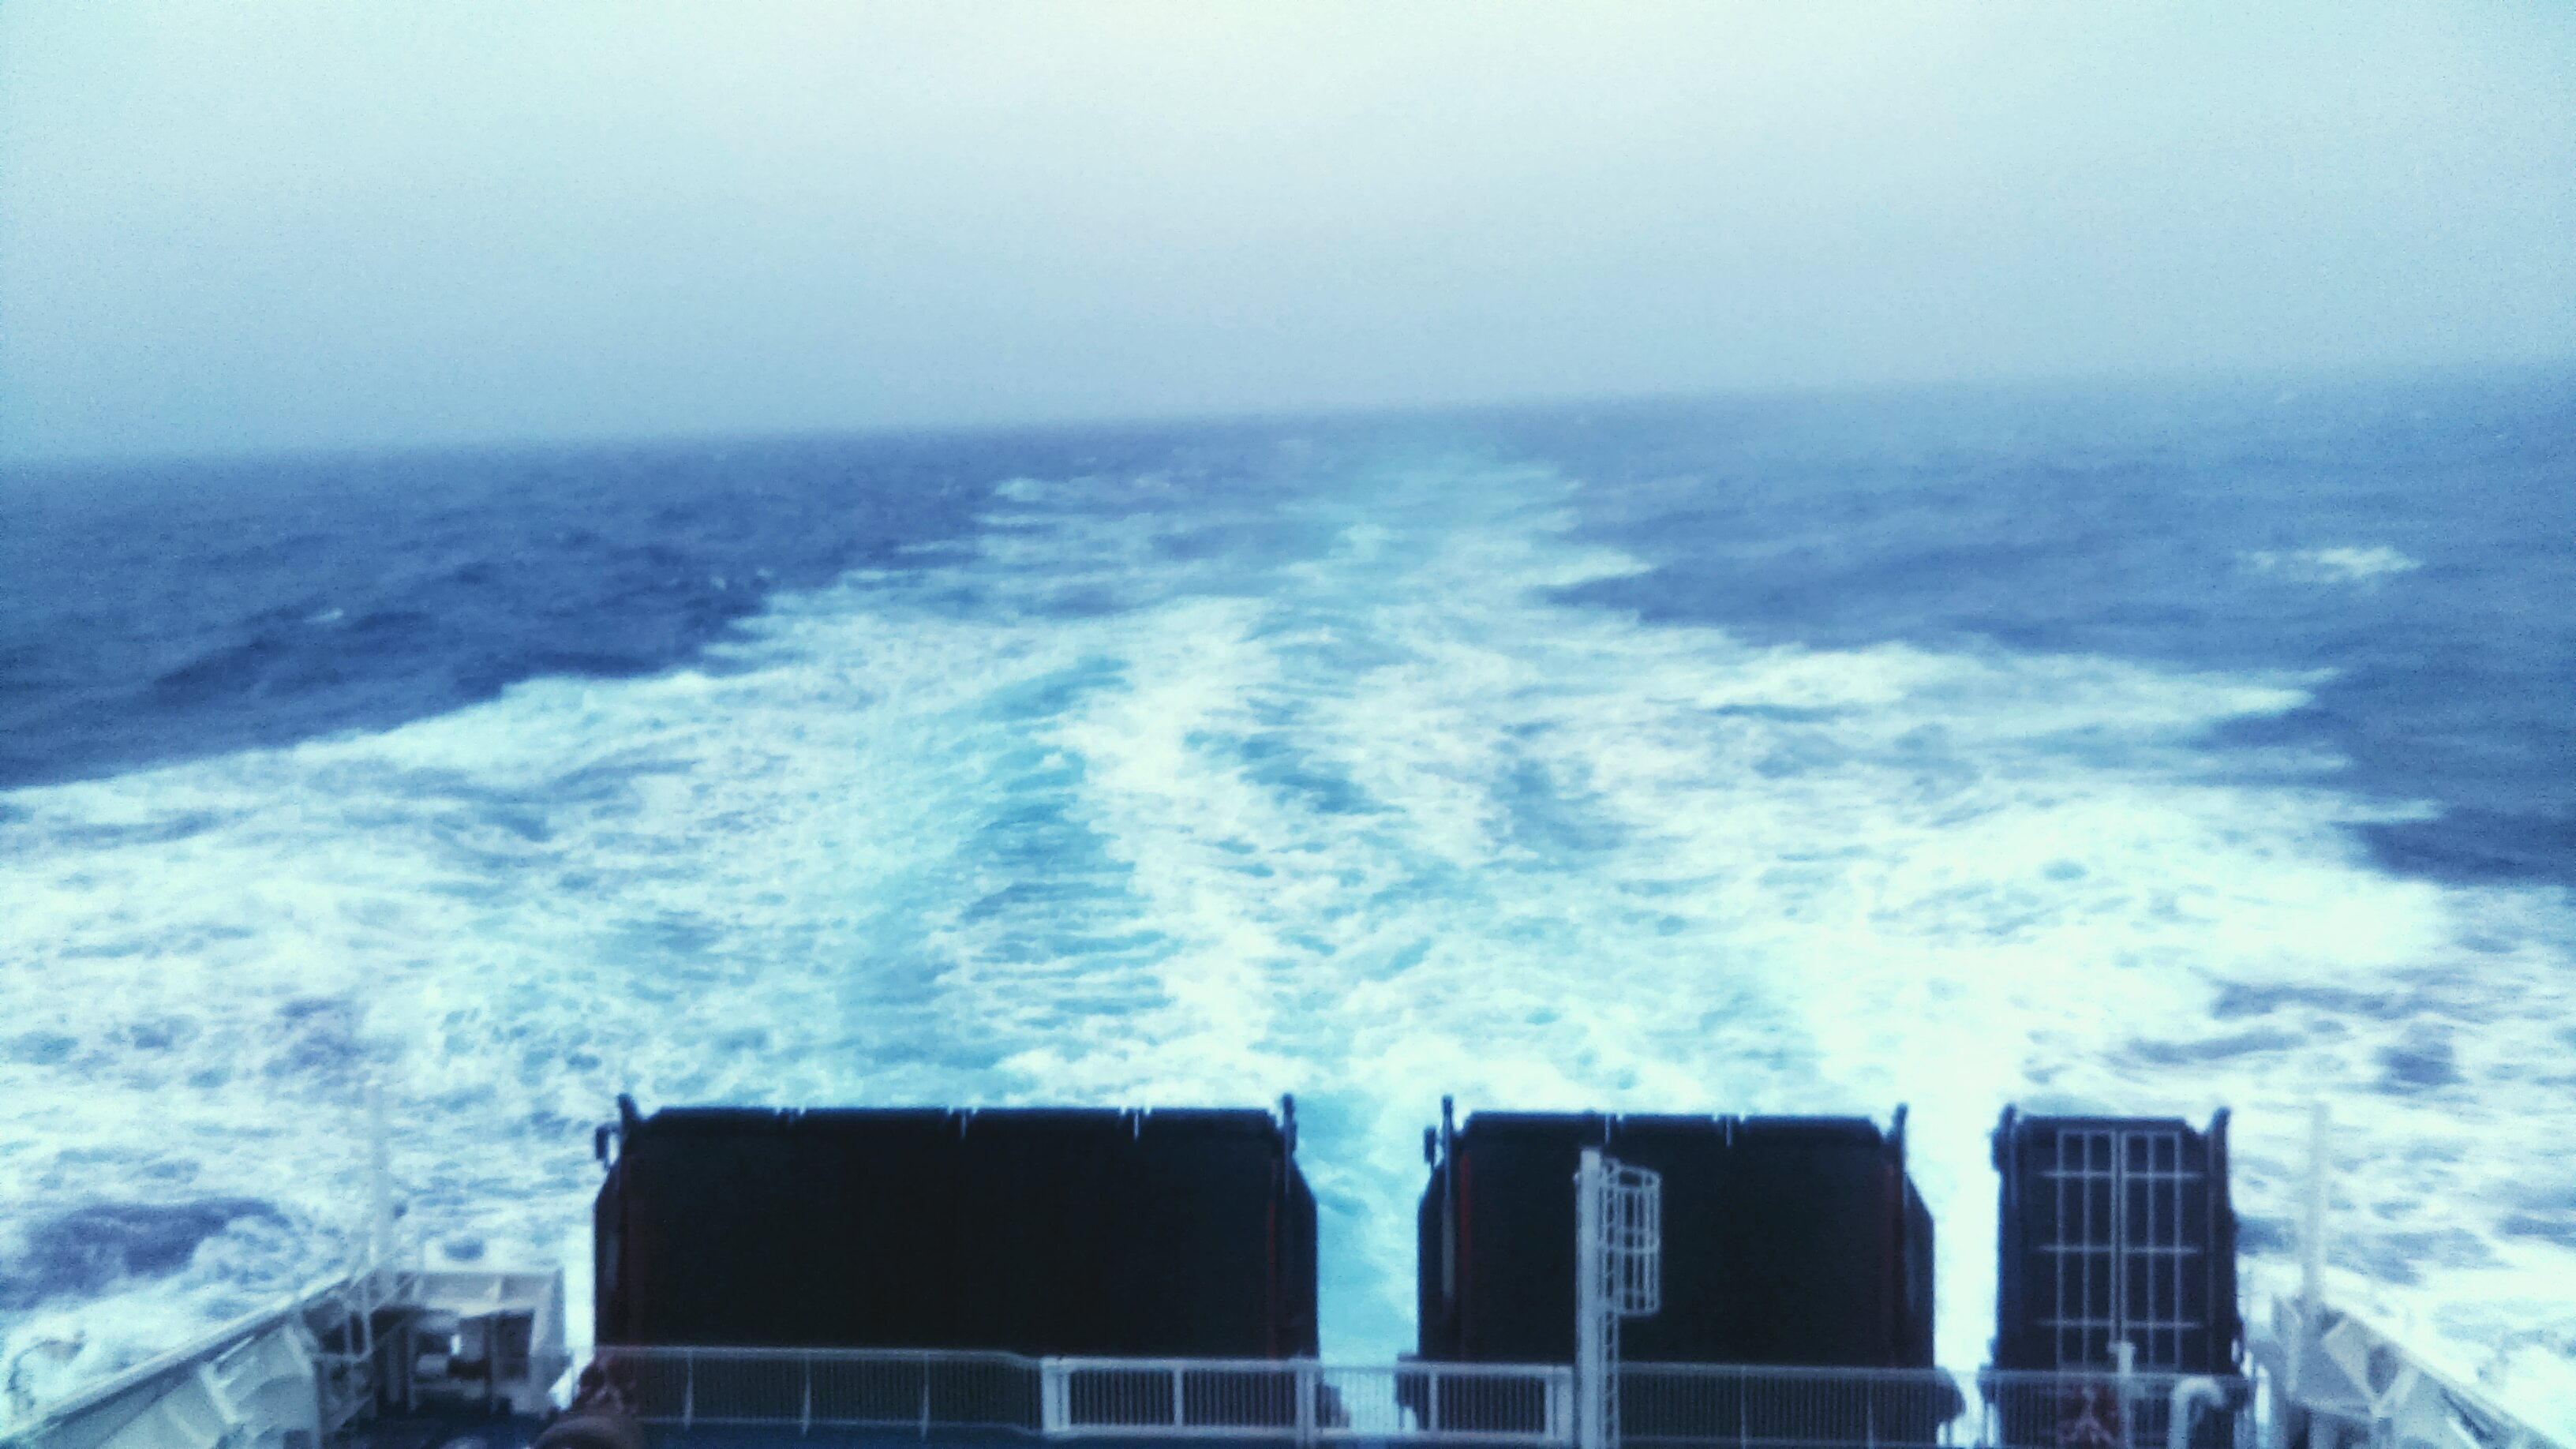 In open seas.